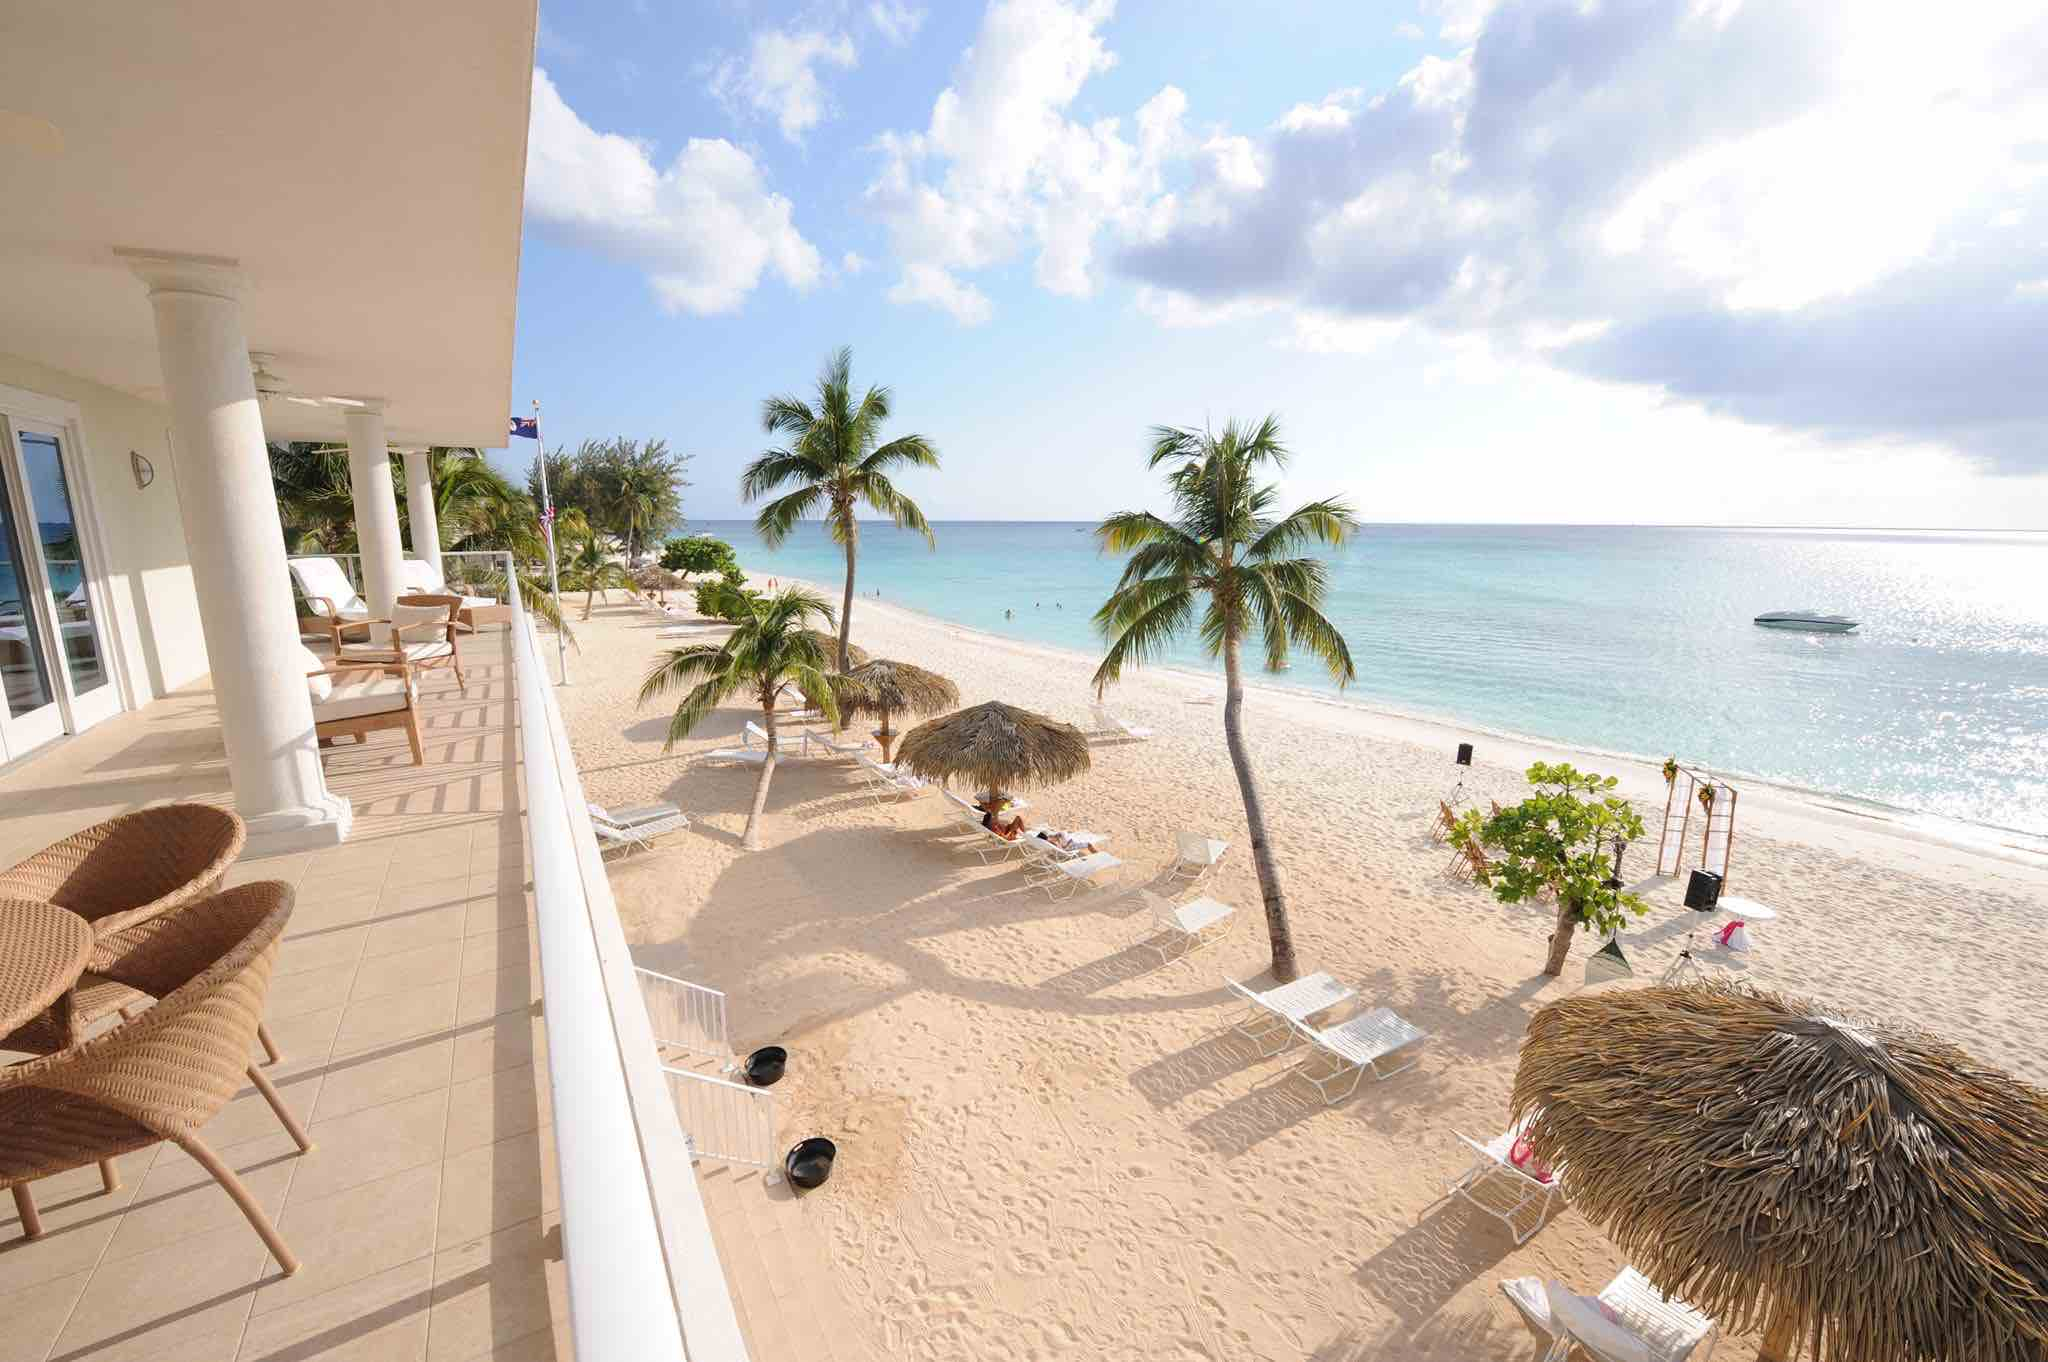 Caribbean Club balcony view over the beach luxury hotels in cayman islands